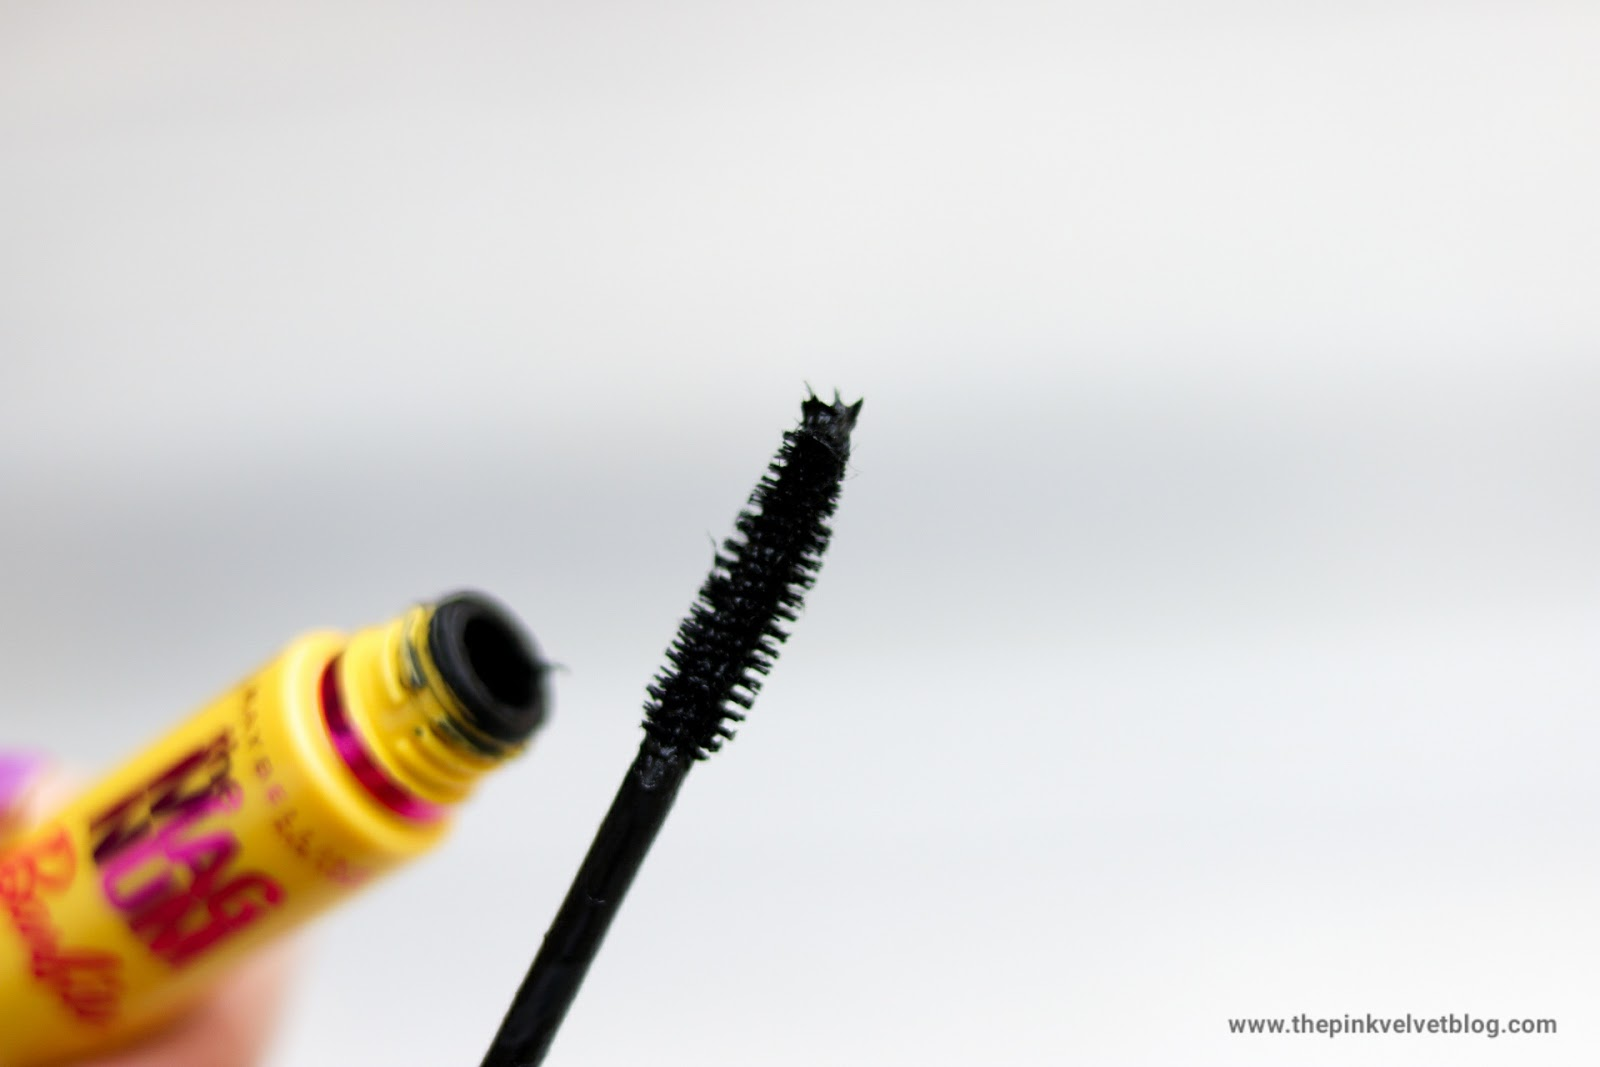 maybelline waterproof mascara